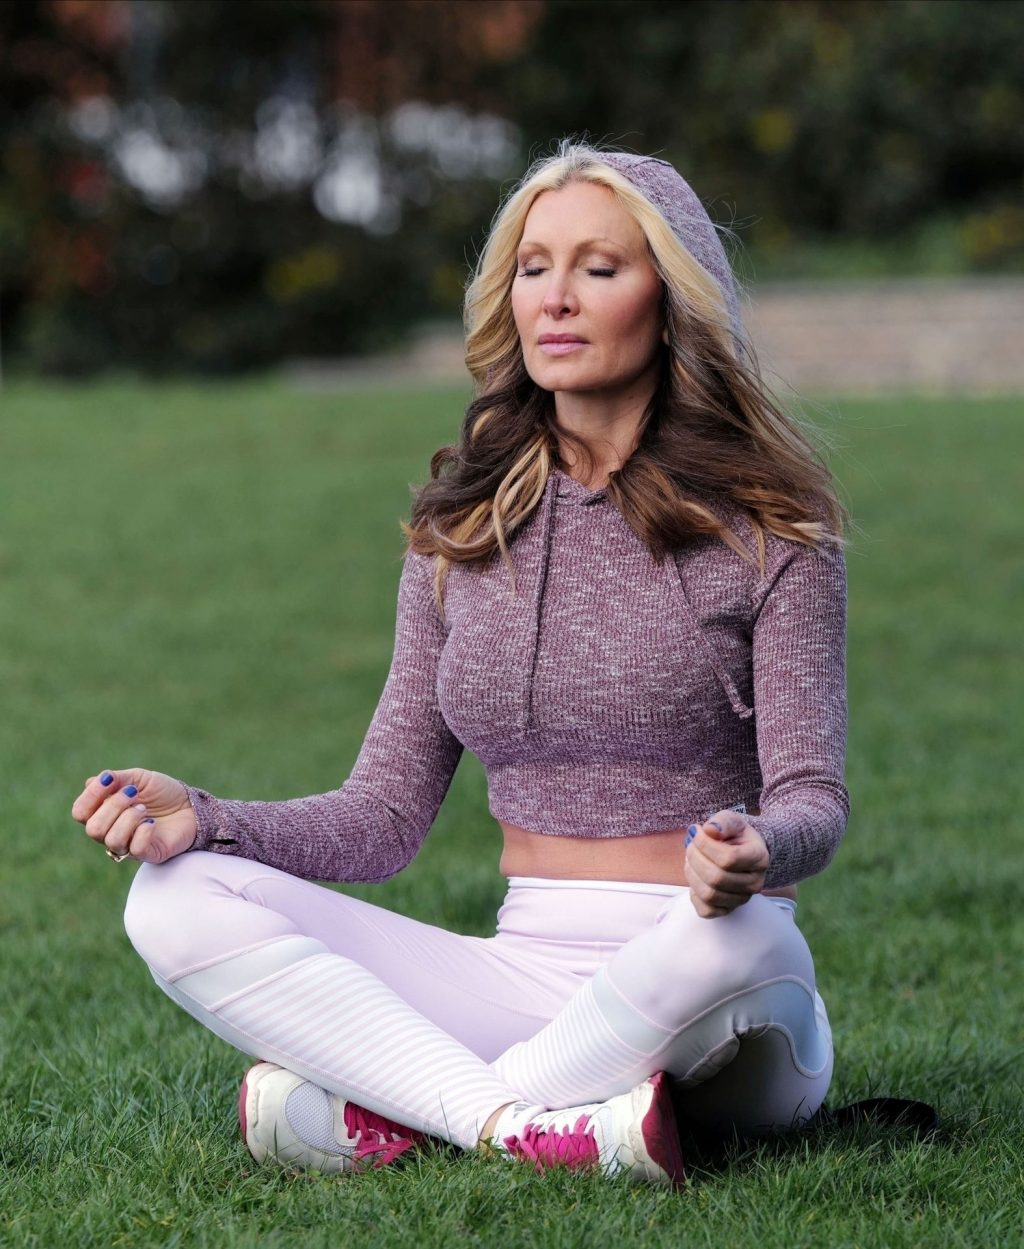 Caprice Takes a Serene Approach by Practicing the Art of Yoga in a London park (10 Photos)